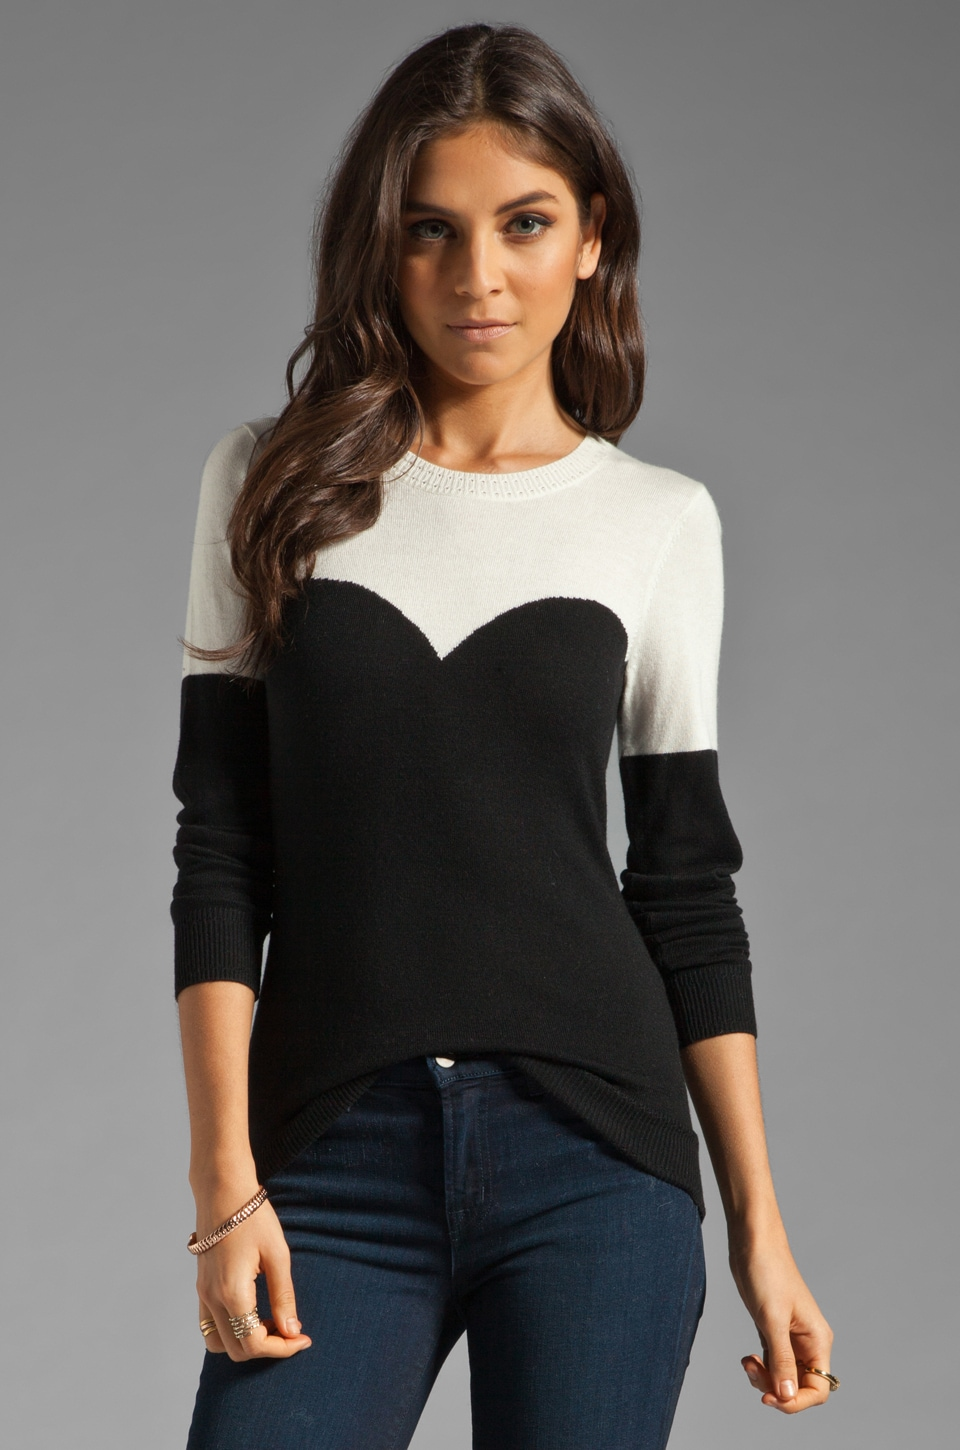 MILLY Marilyn Intarsia Sweater in Black and Ivory